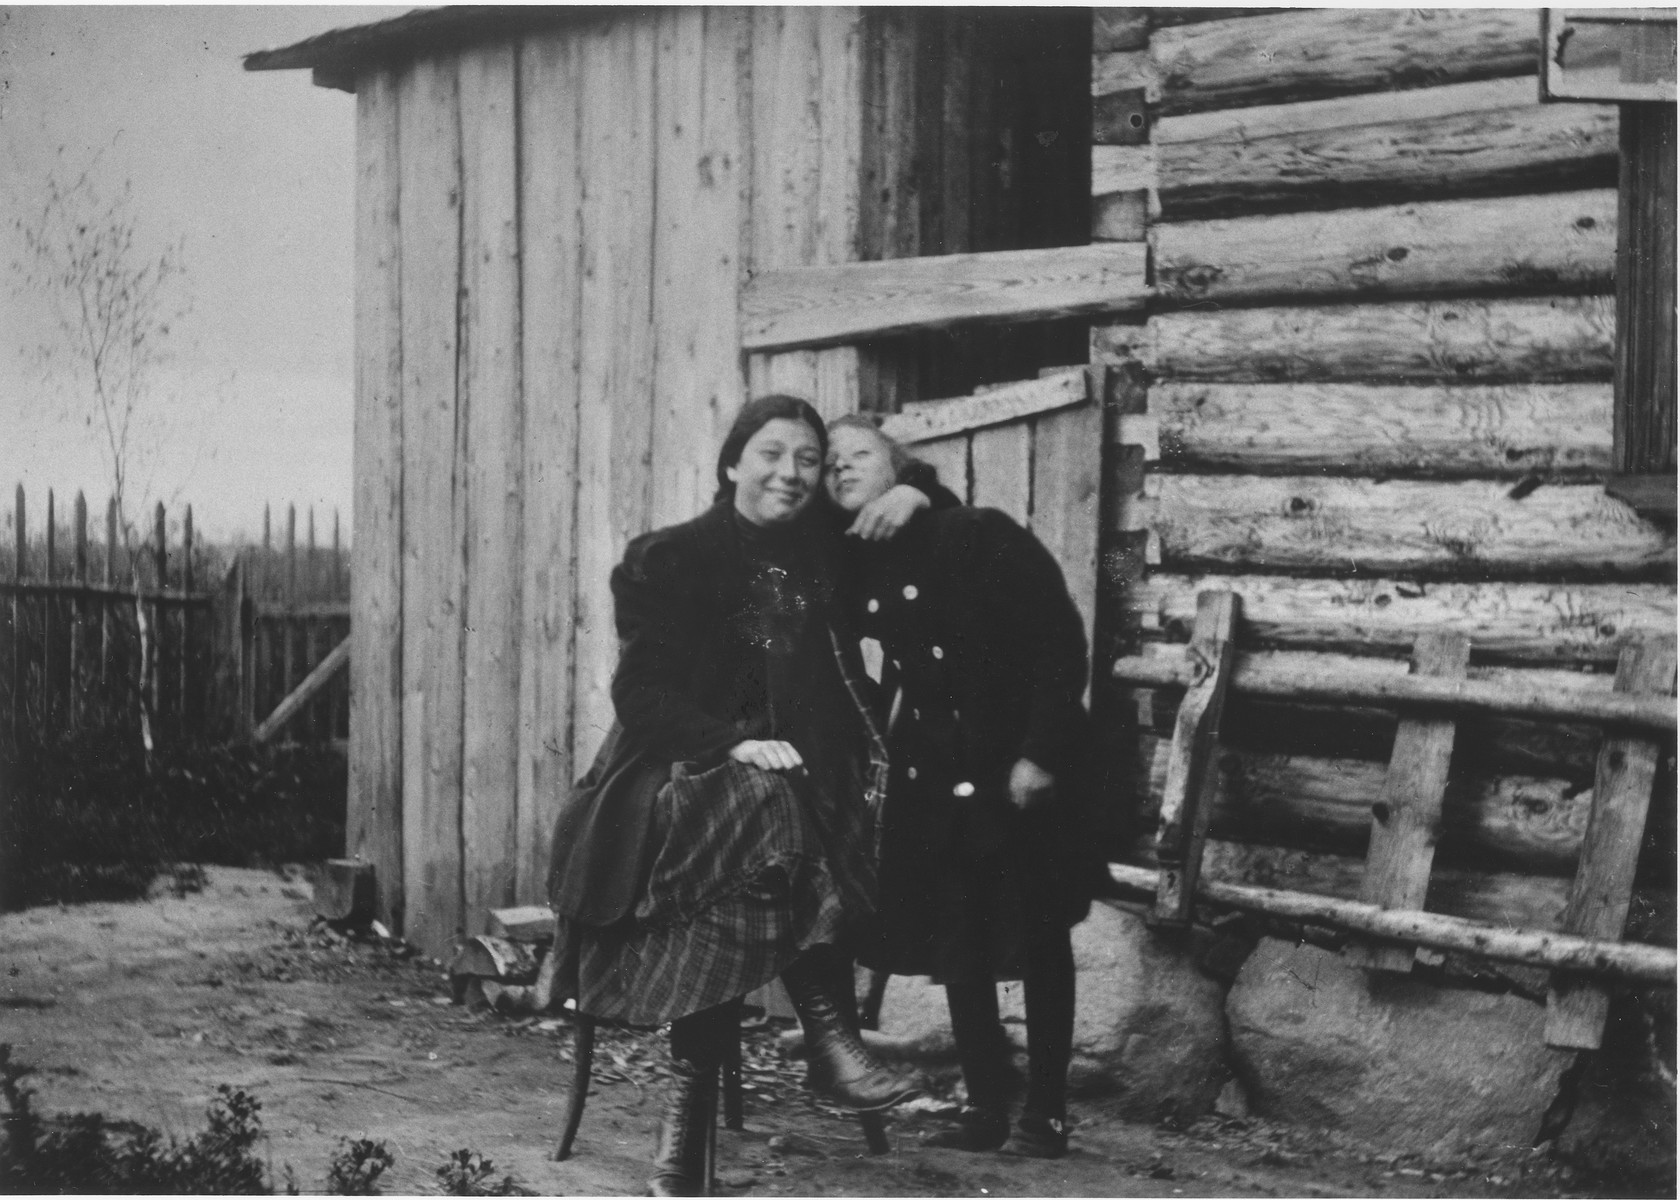 Portrait of two members of the Mikolaevsky family at their dacha in the village of Strelna, a suburb of St. Petersburg.